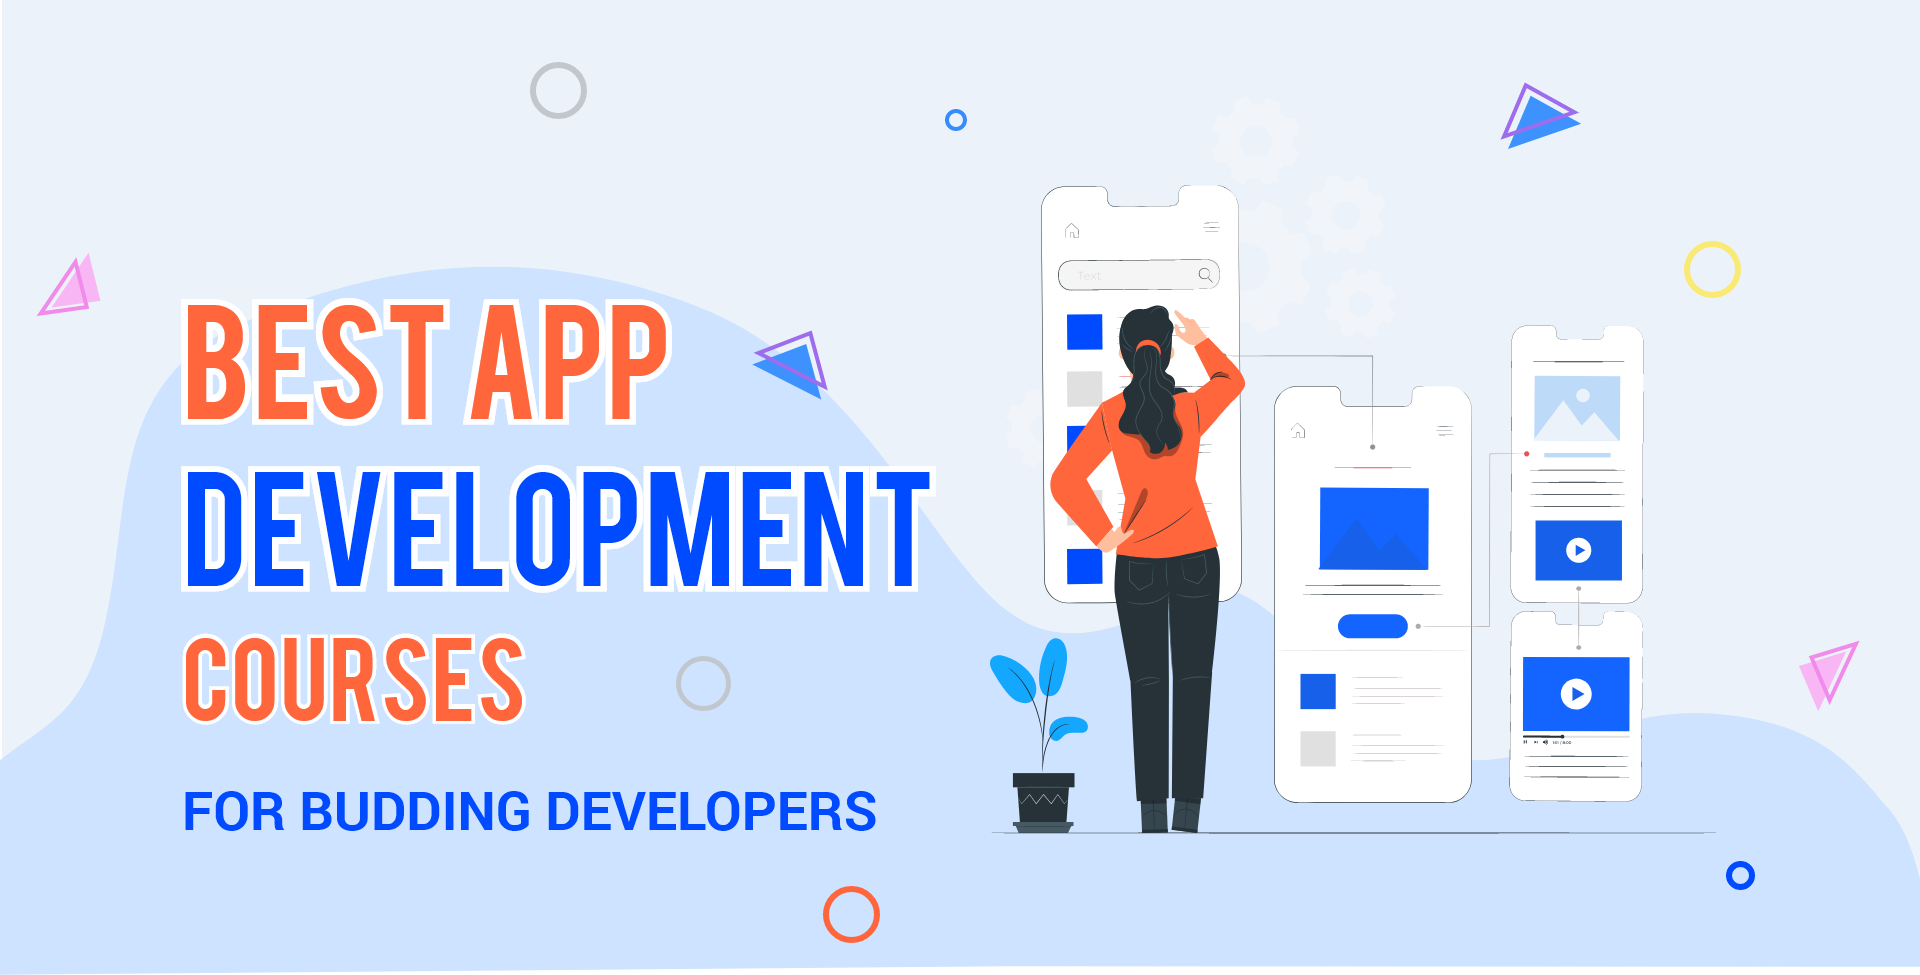 Looking for Best App Development Courses? The trending Ones Here!